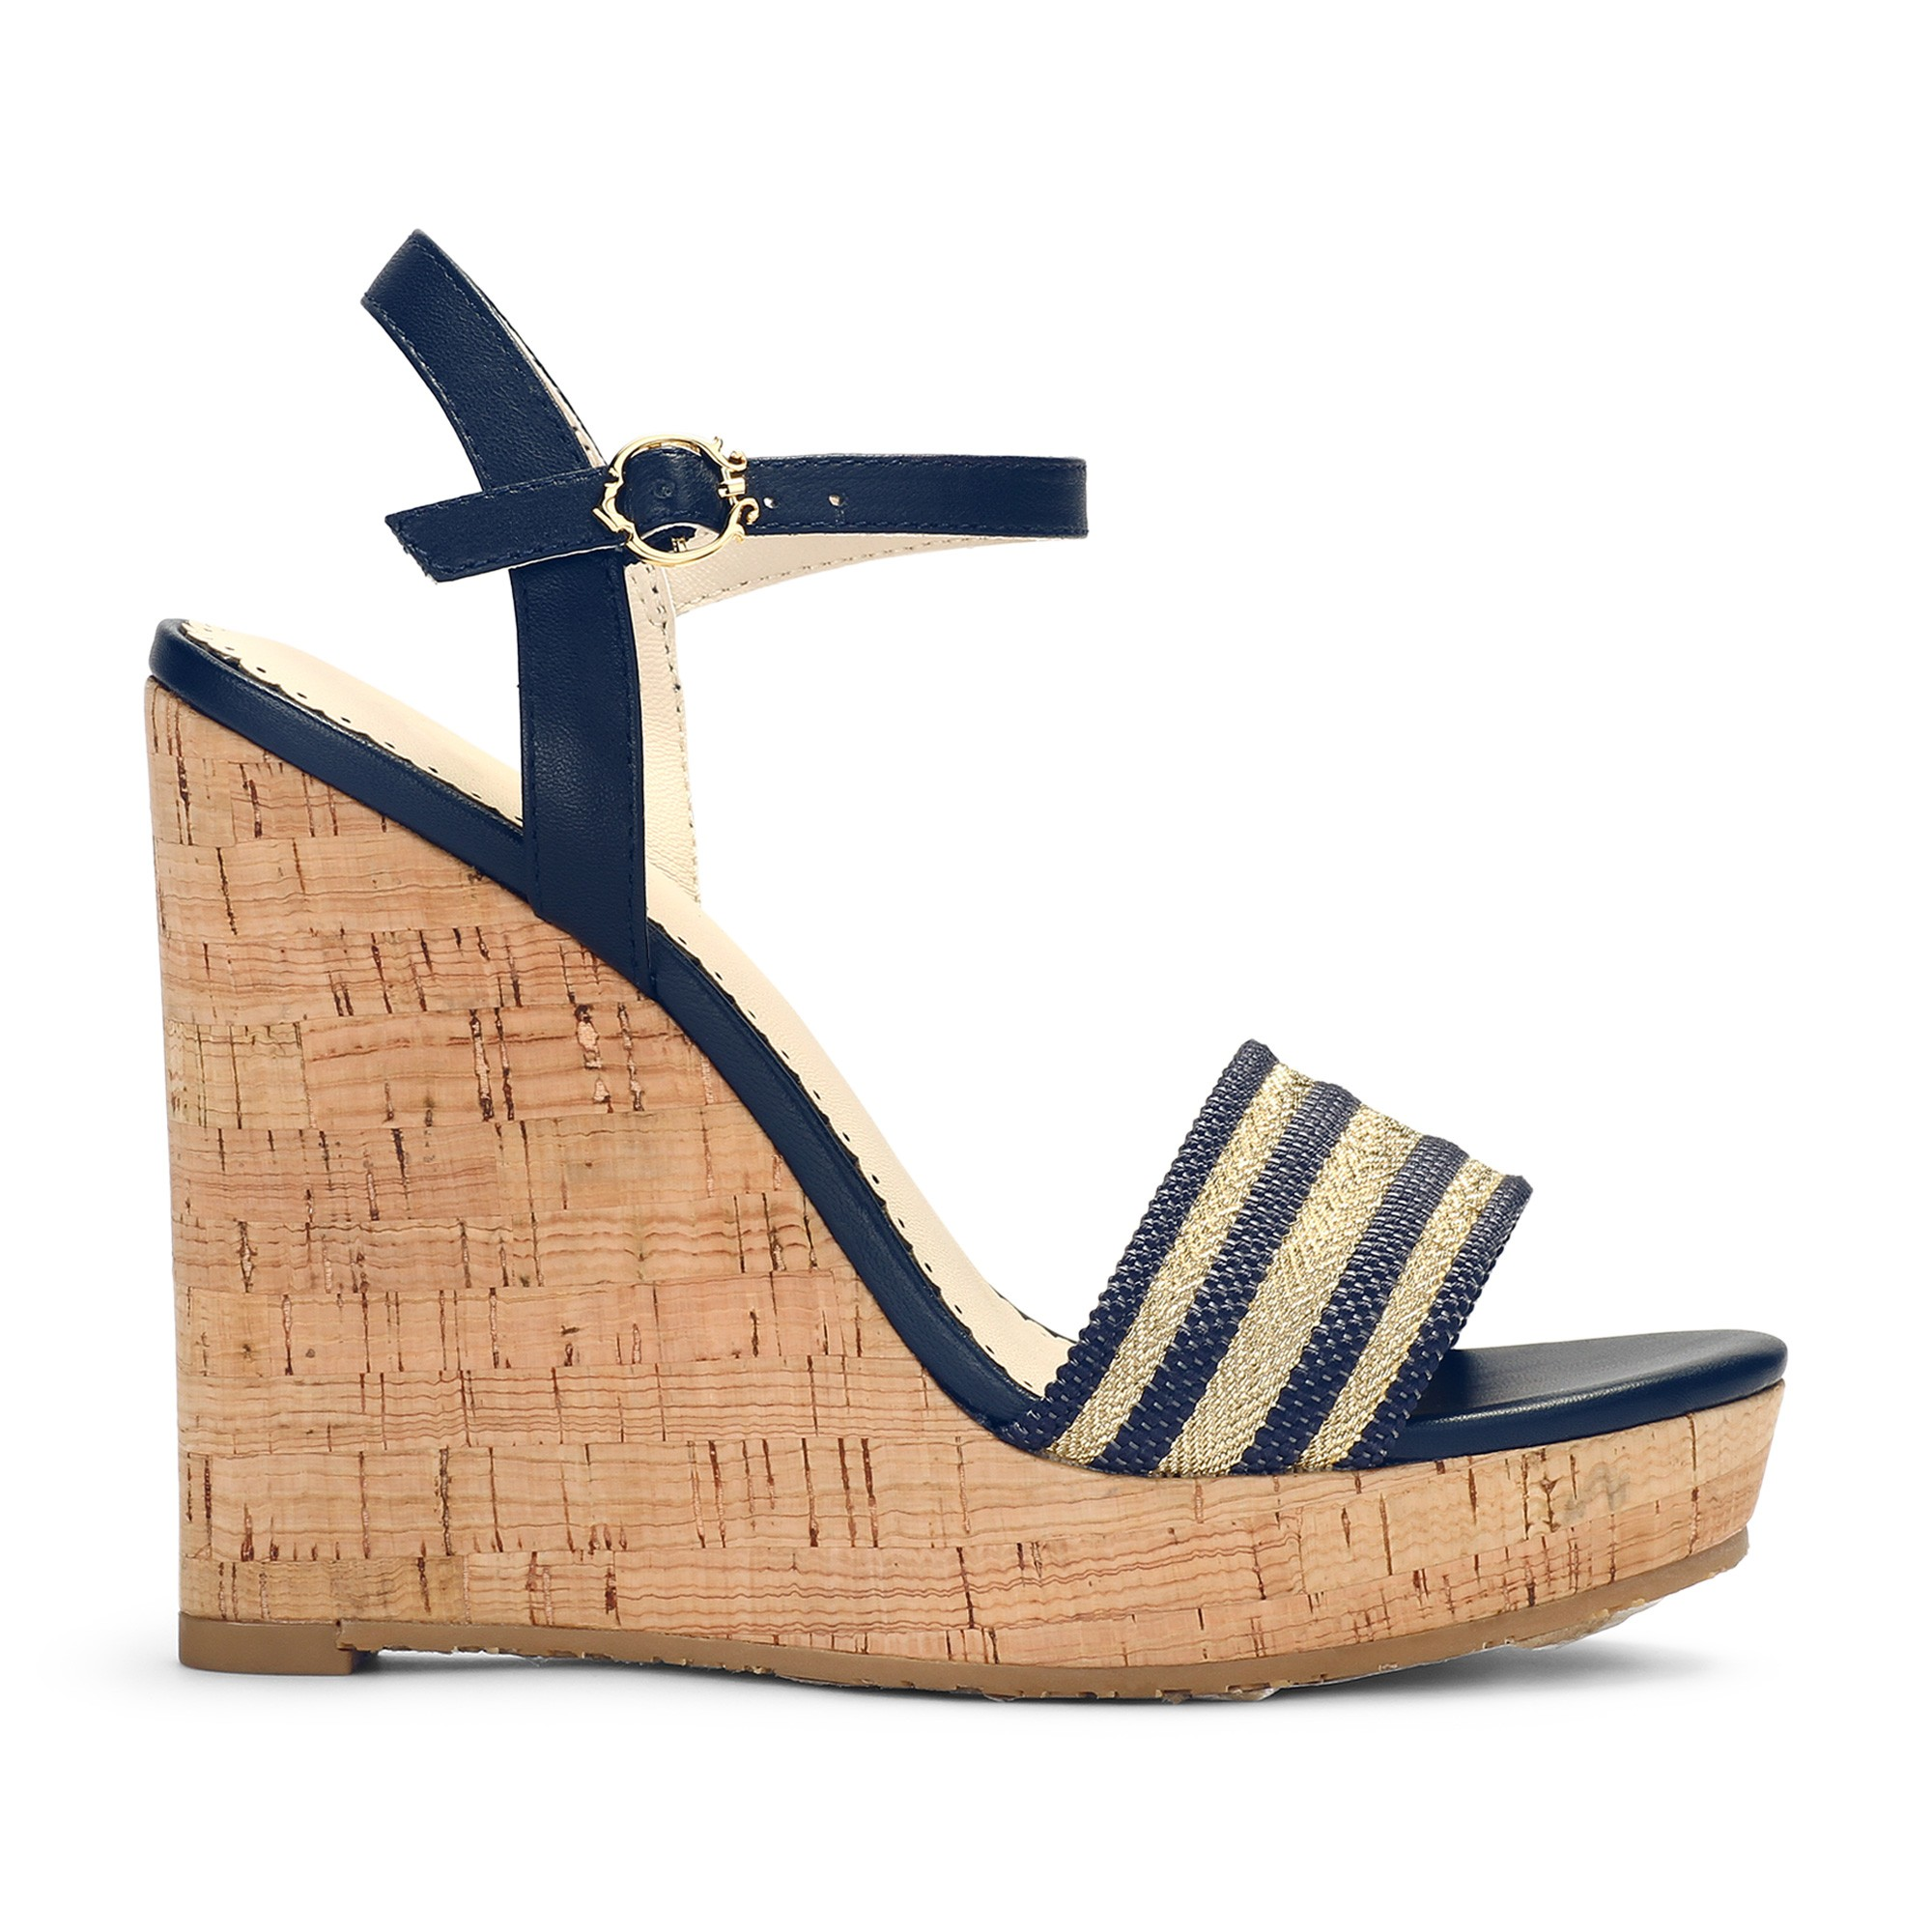 Womens wedges. Cheap shoes online